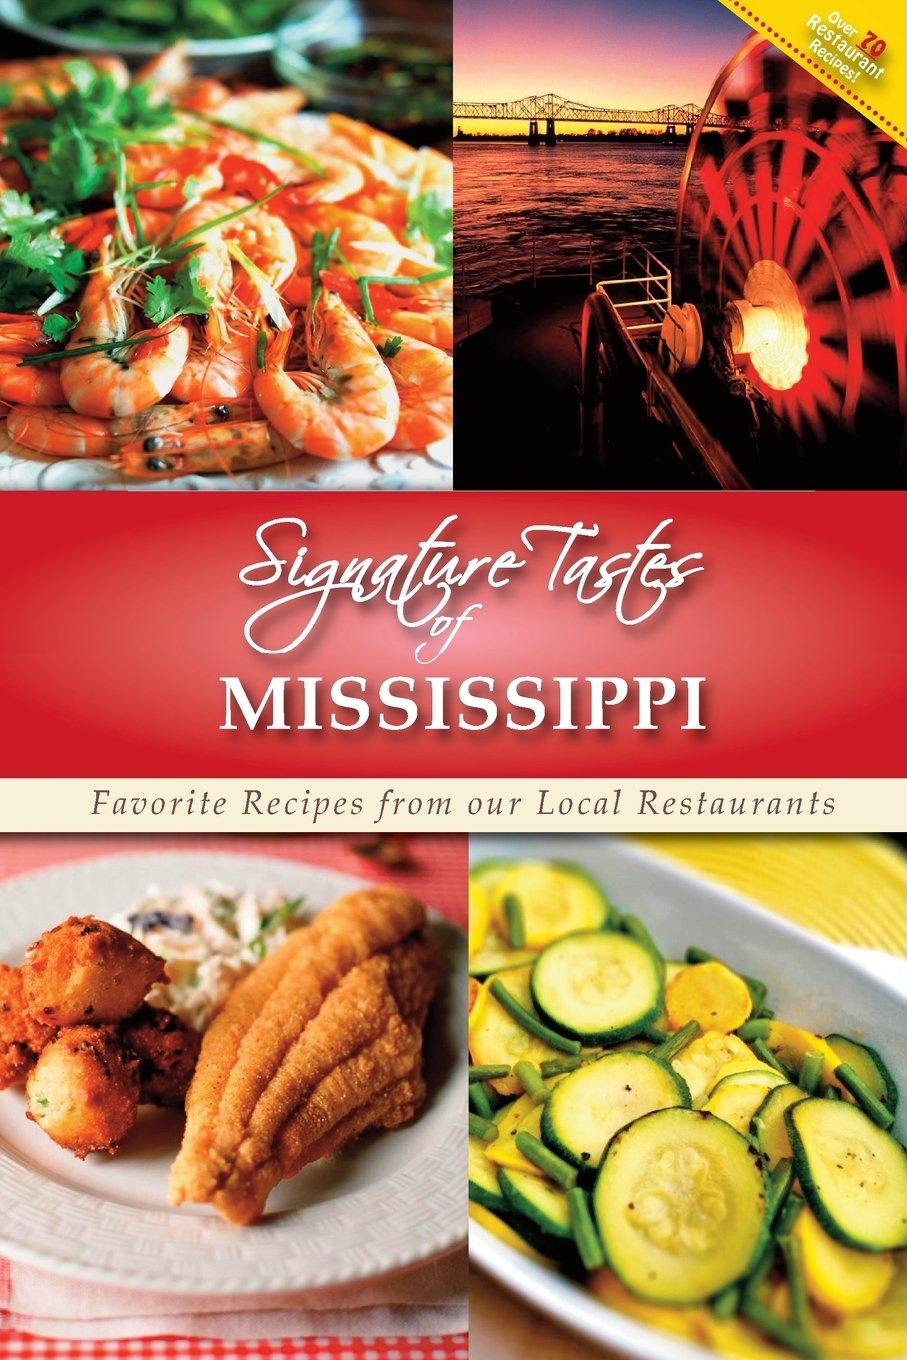 Signature Tastes of Mississippi